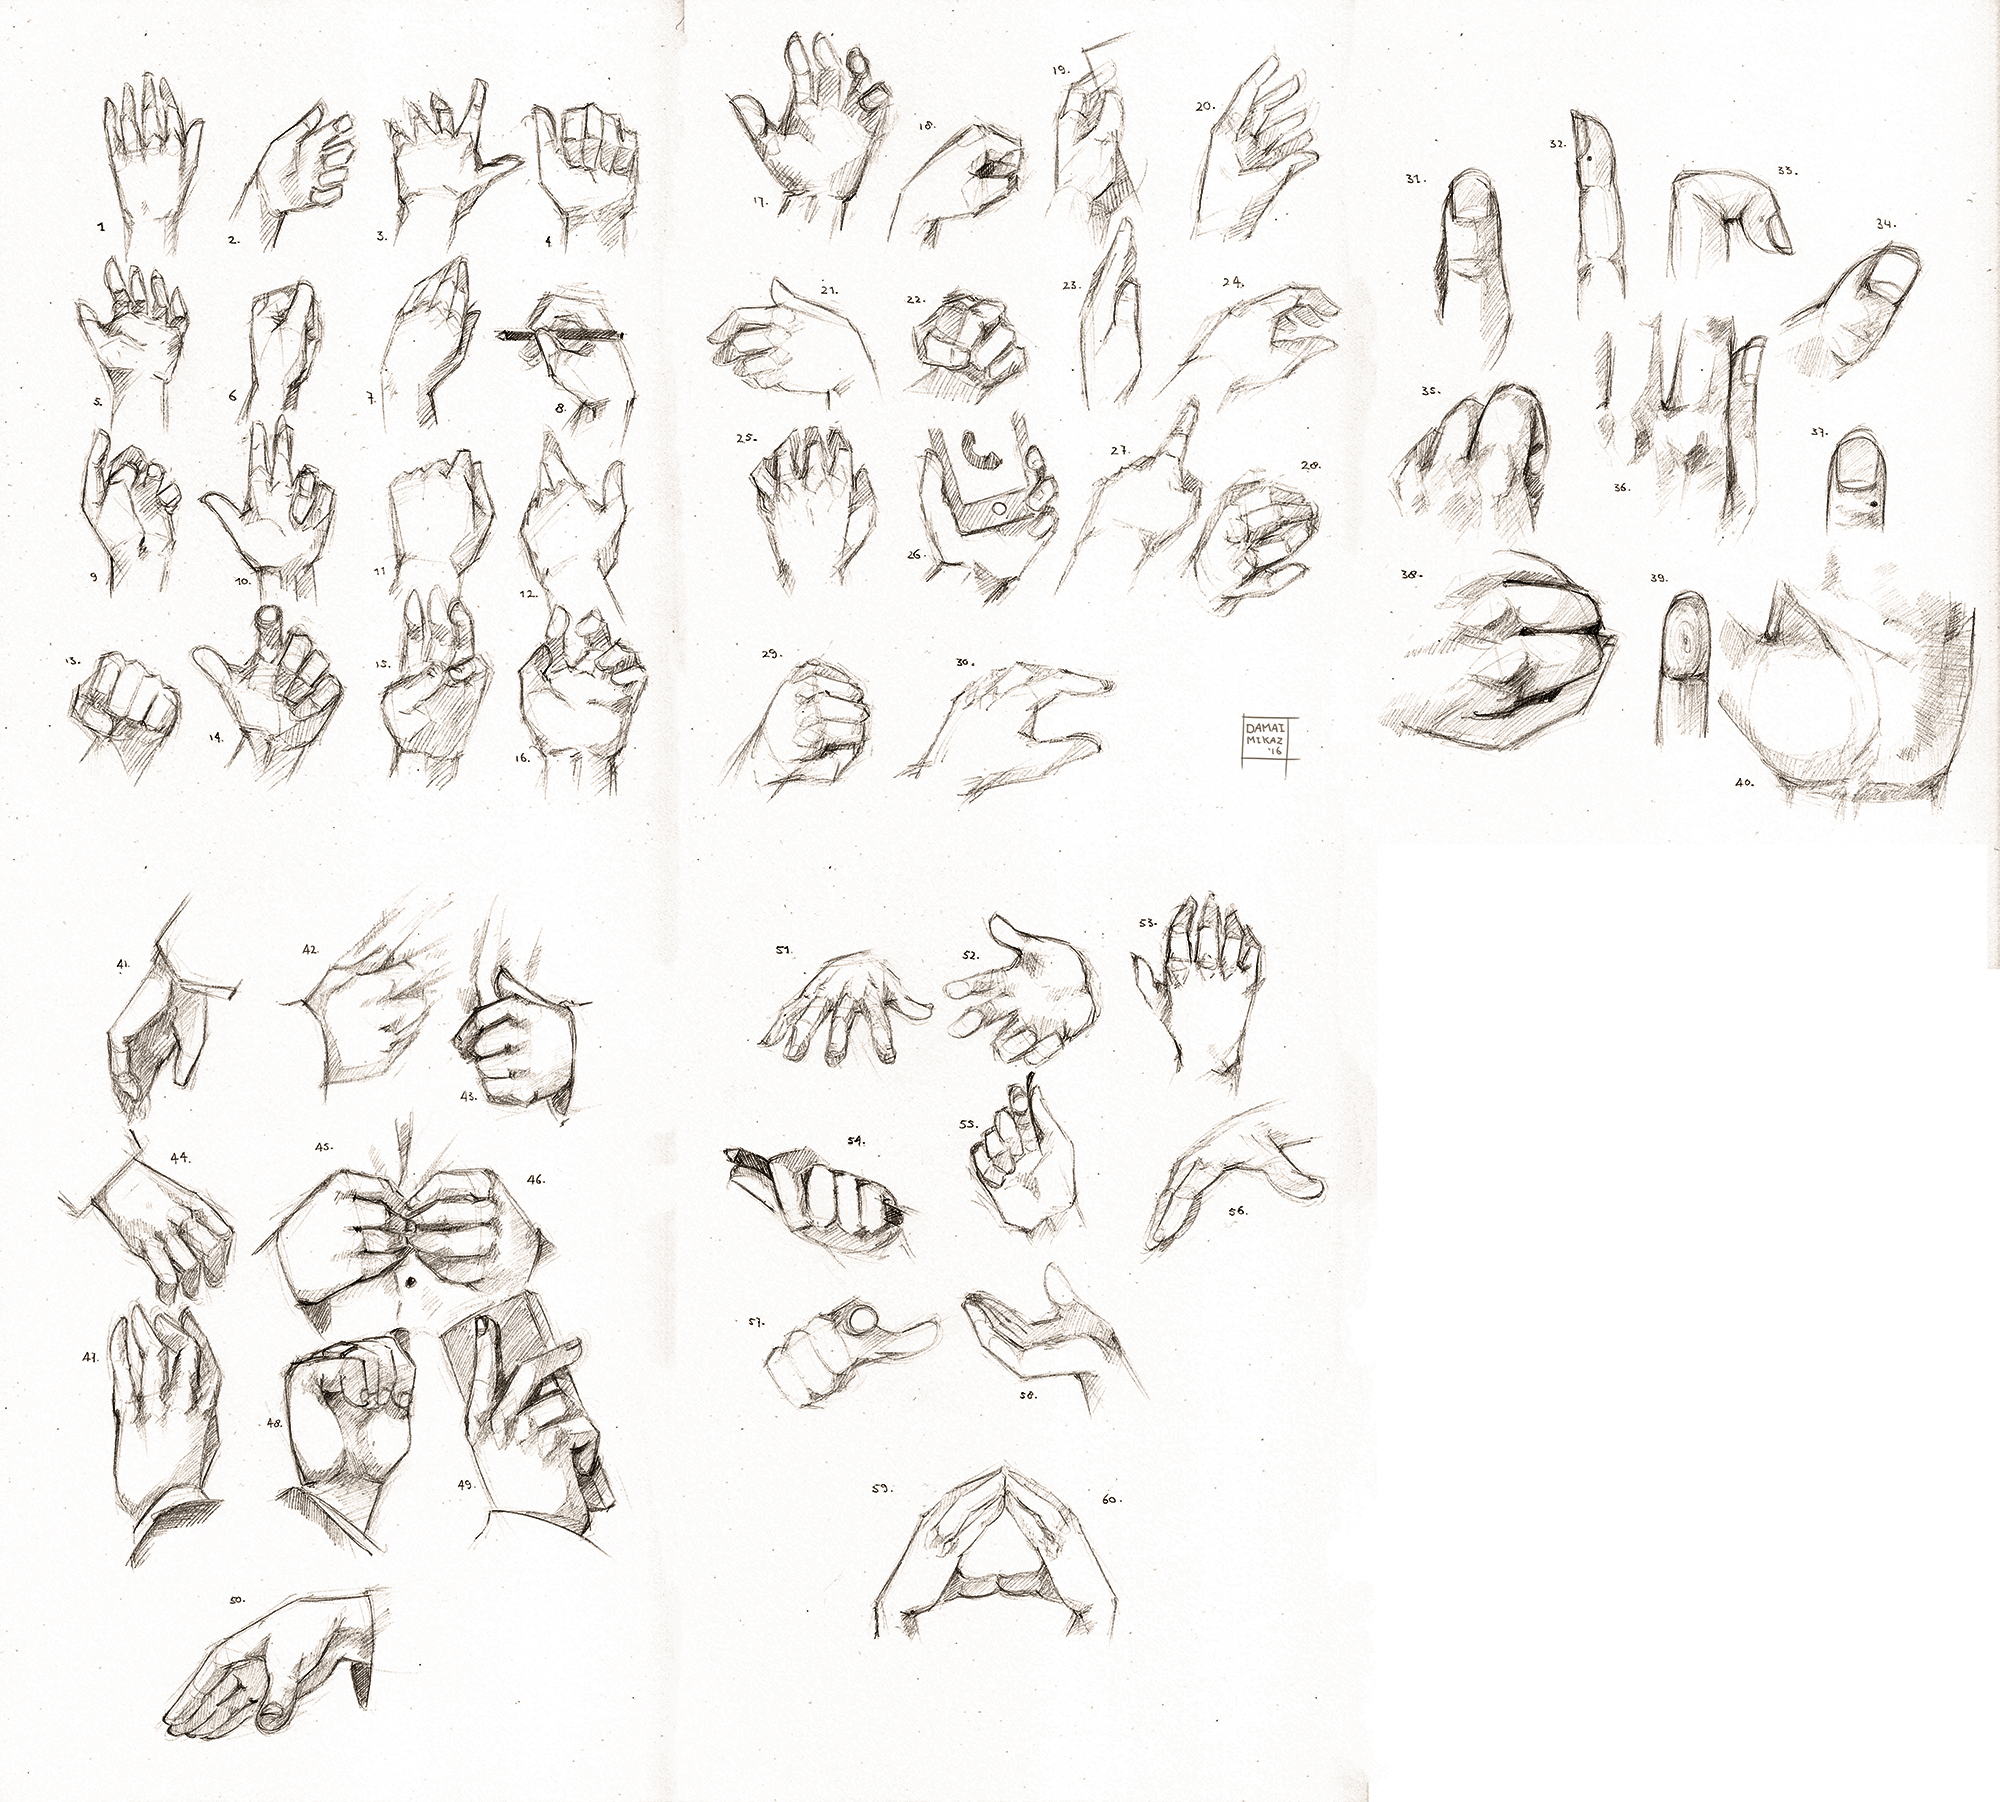 Sketchdump July 2016 [Hands]